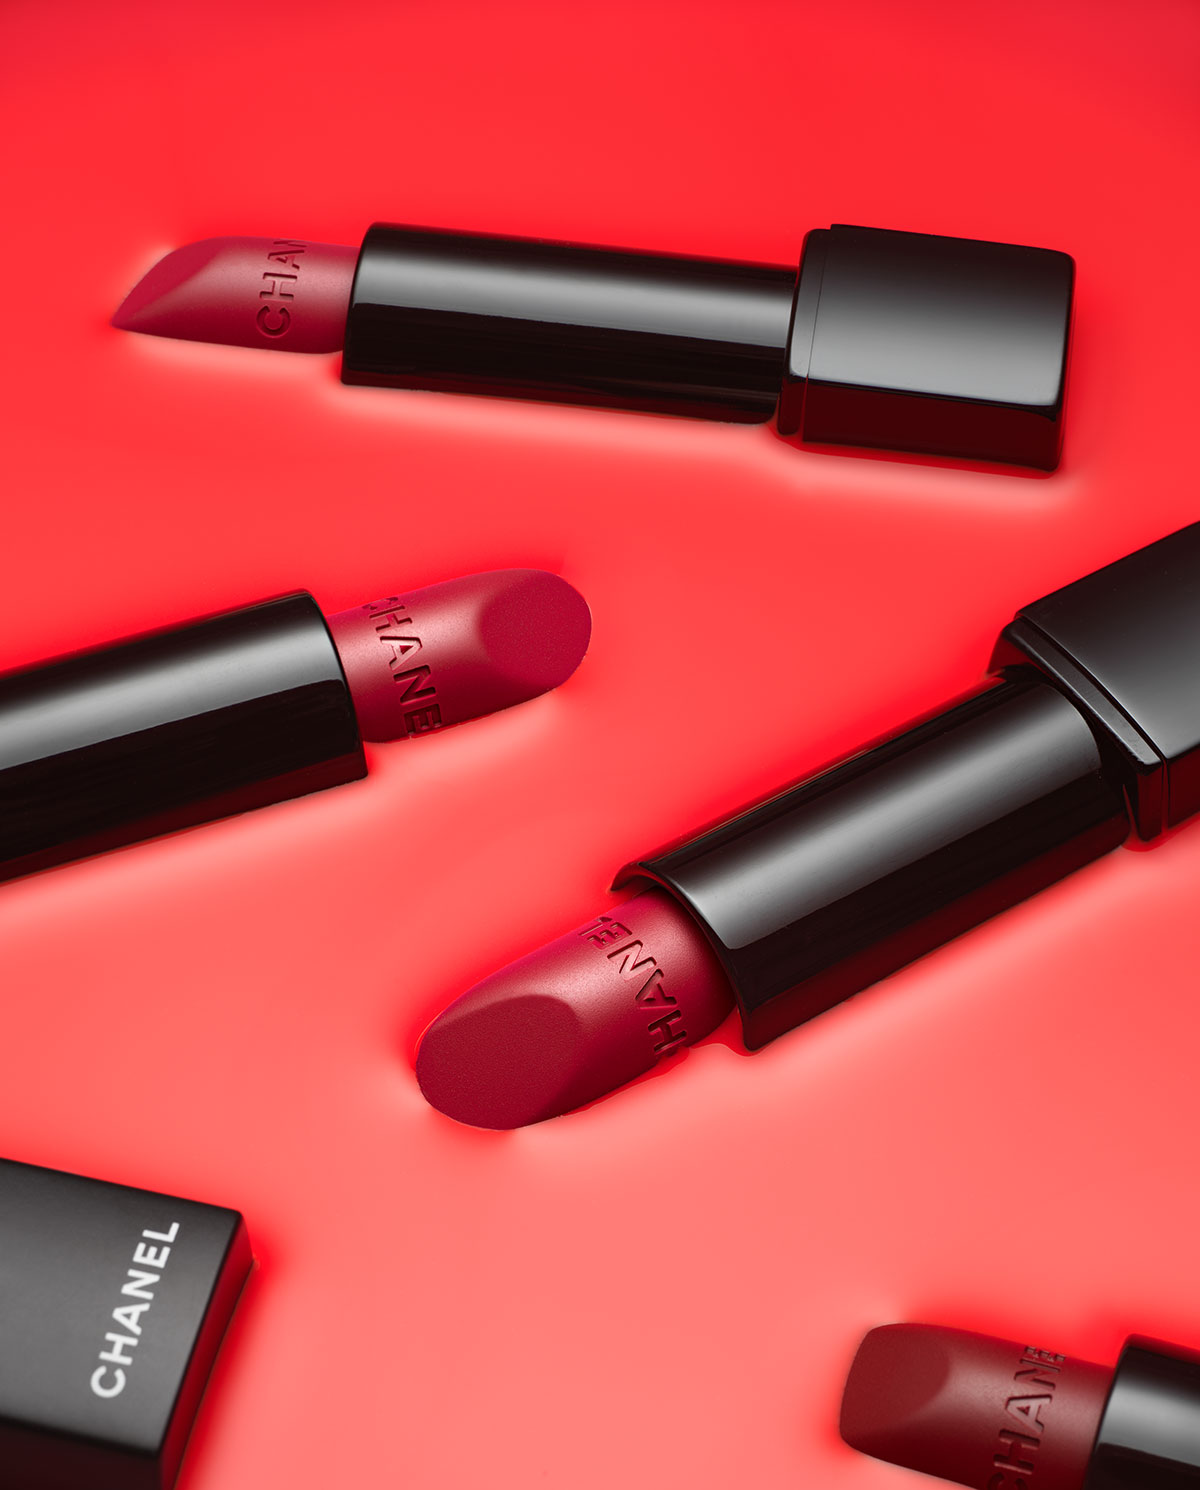 Chanel Lipstick Product photography by Karl Taylor